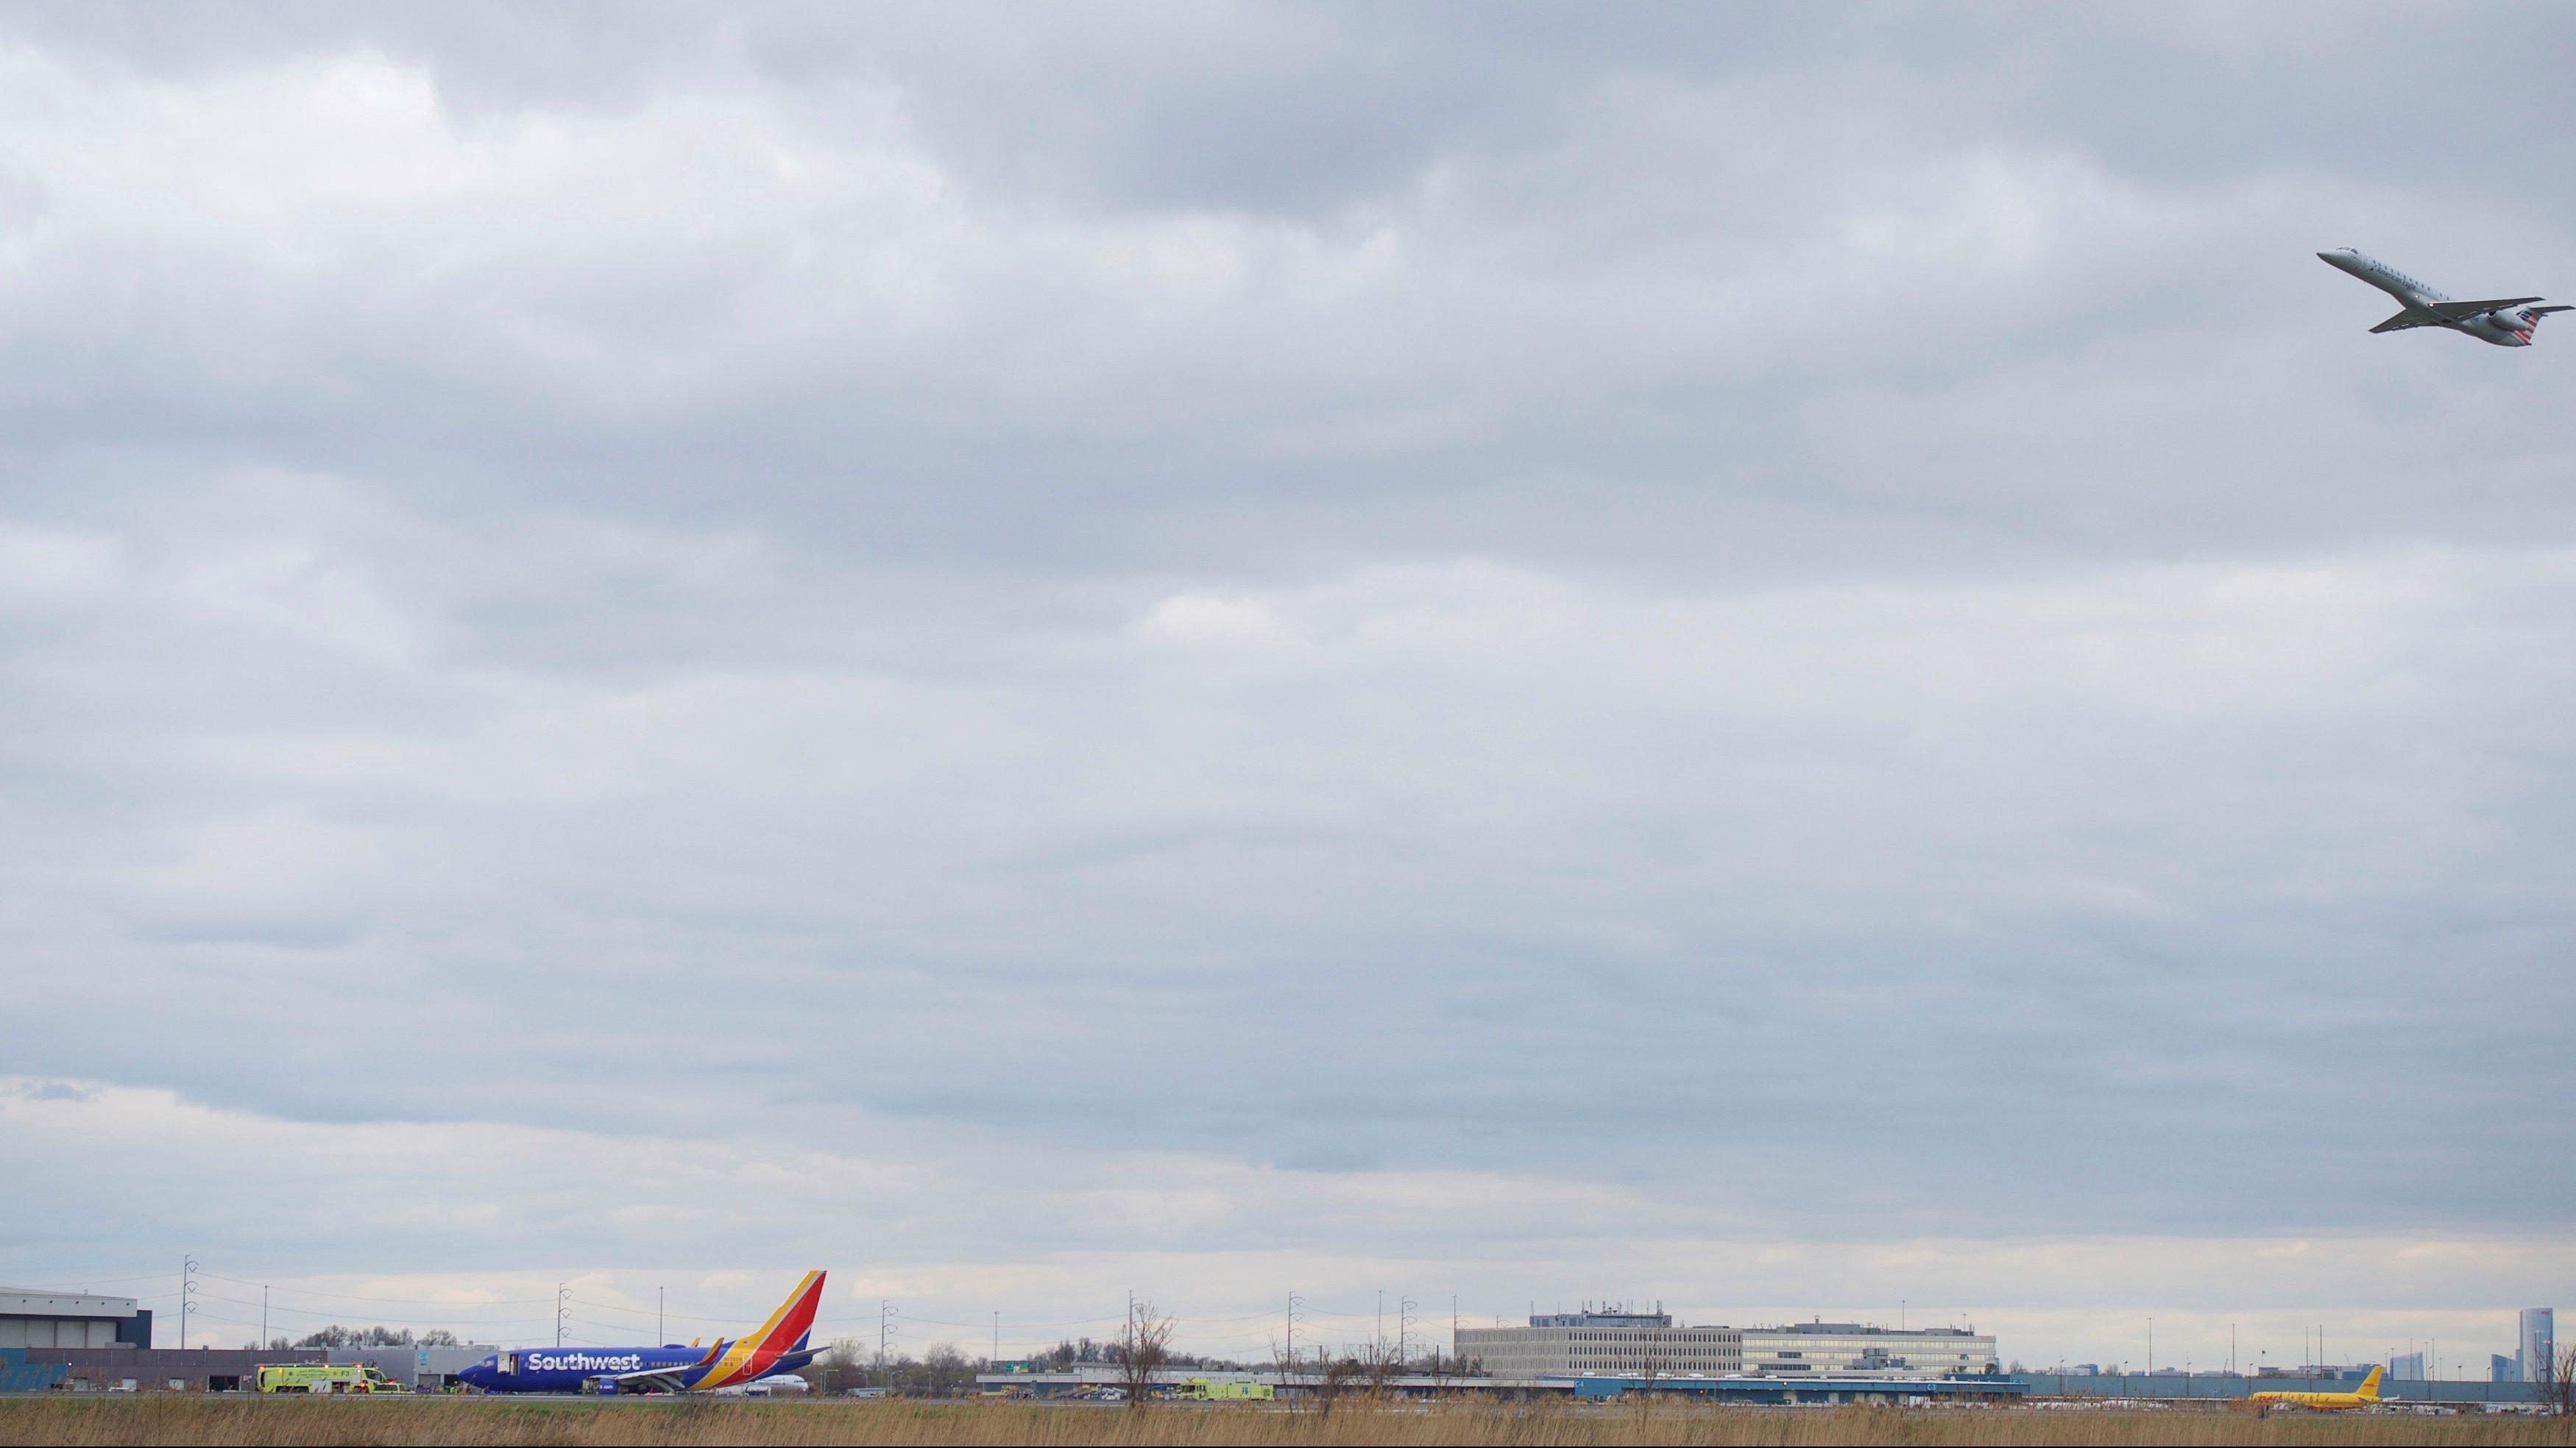 A plane departs as emergency personnel monitor the damaged engine of Southwest Airlines Flight 1380, which diverted to the Philadelphia International Airport this morning, in Philadelphia, Pennsylvania